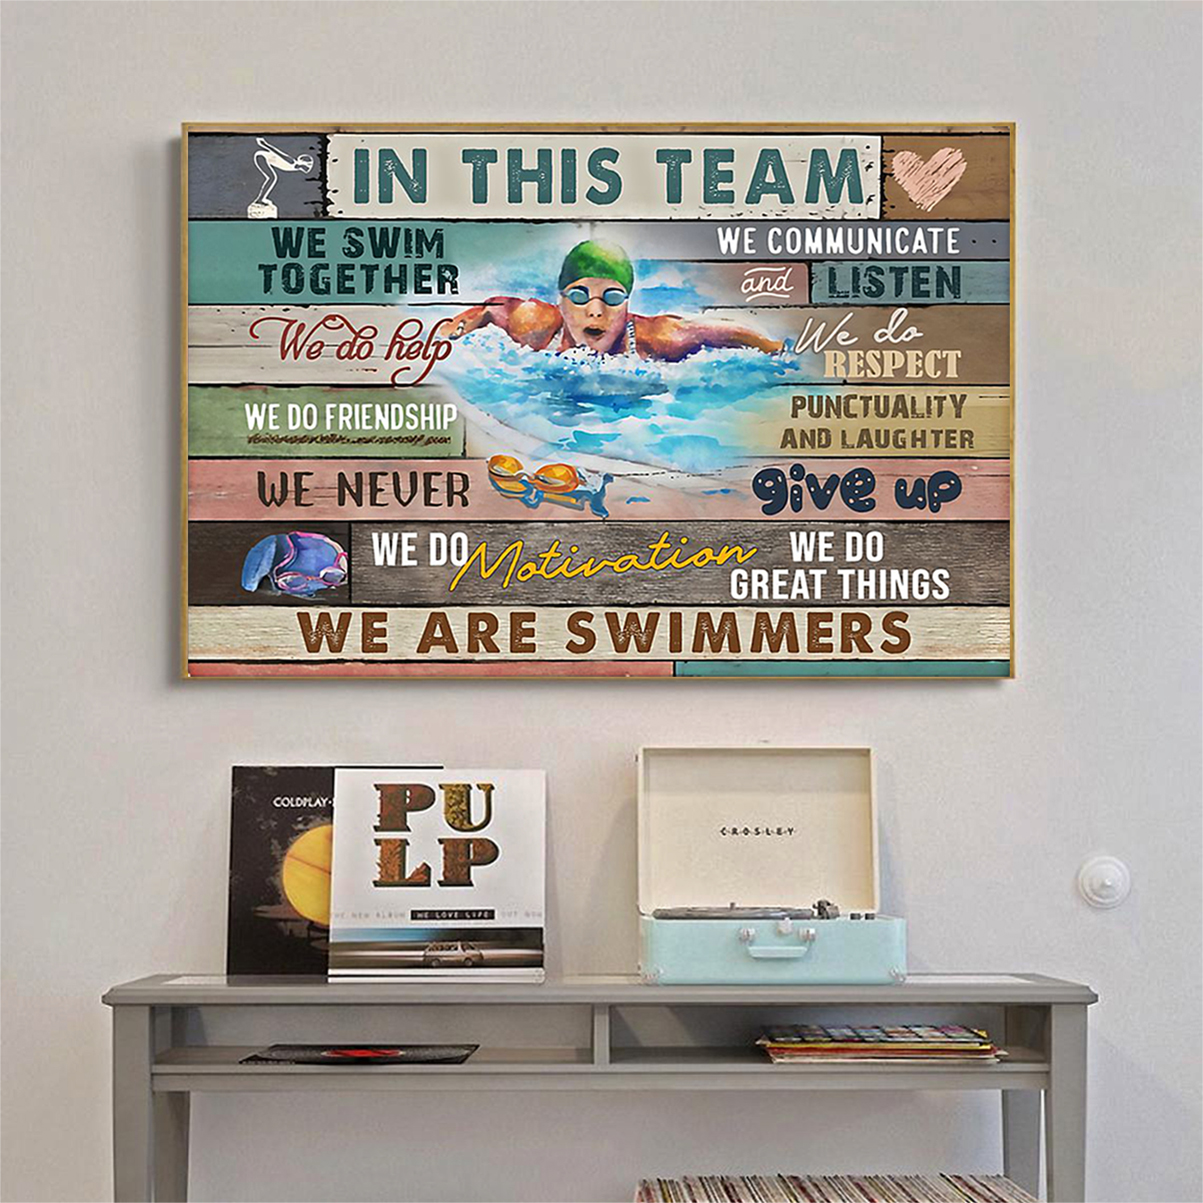 Swimming in this team poster A2